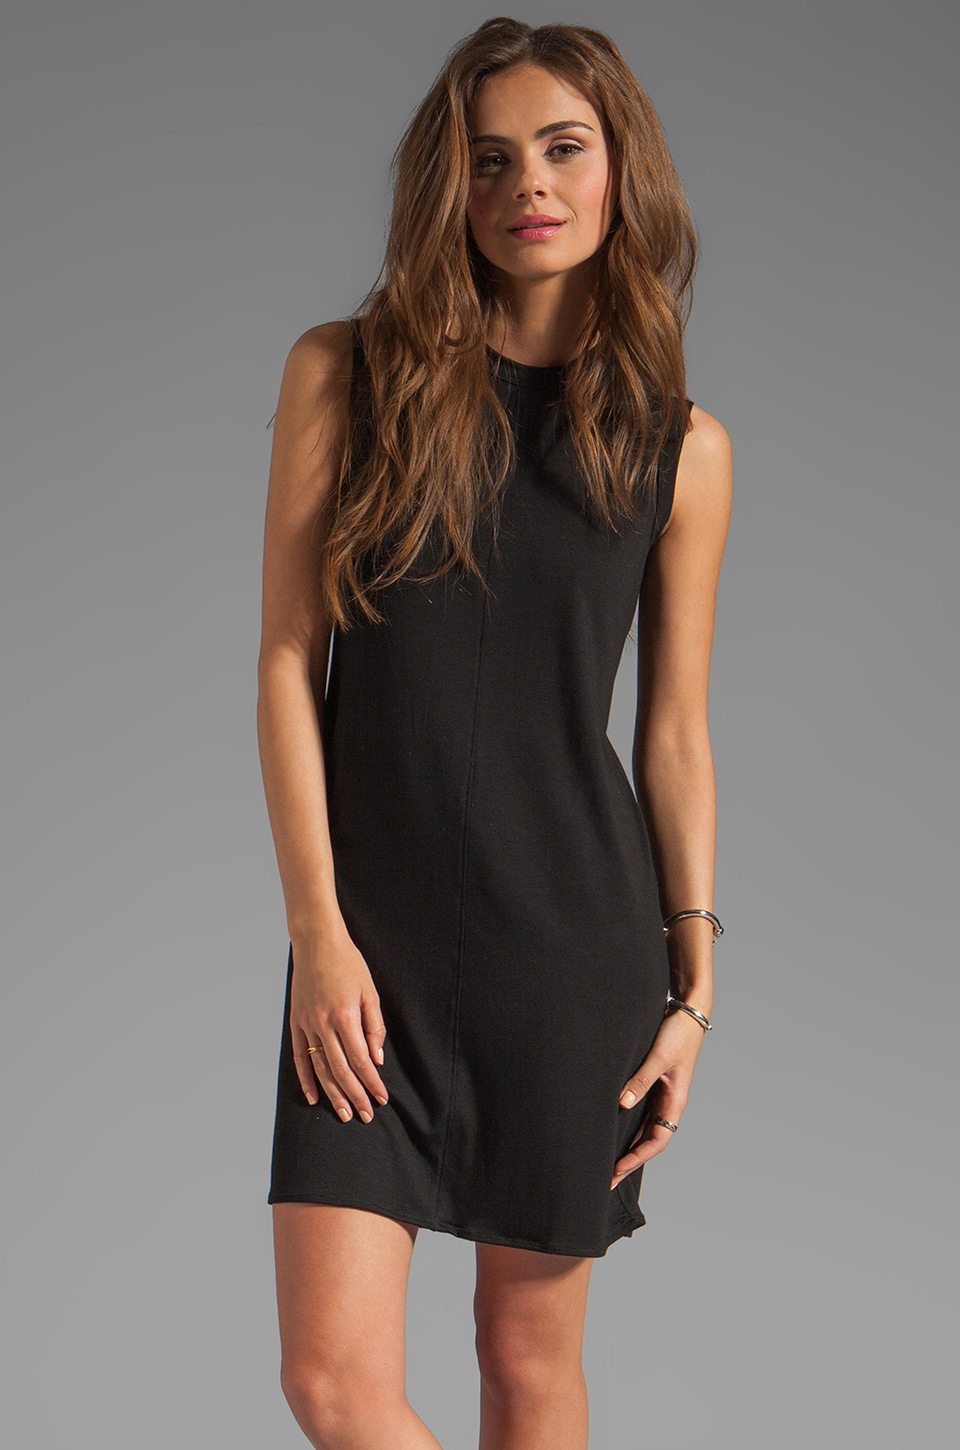 fLuXuS Stewart Tank Dress in Black